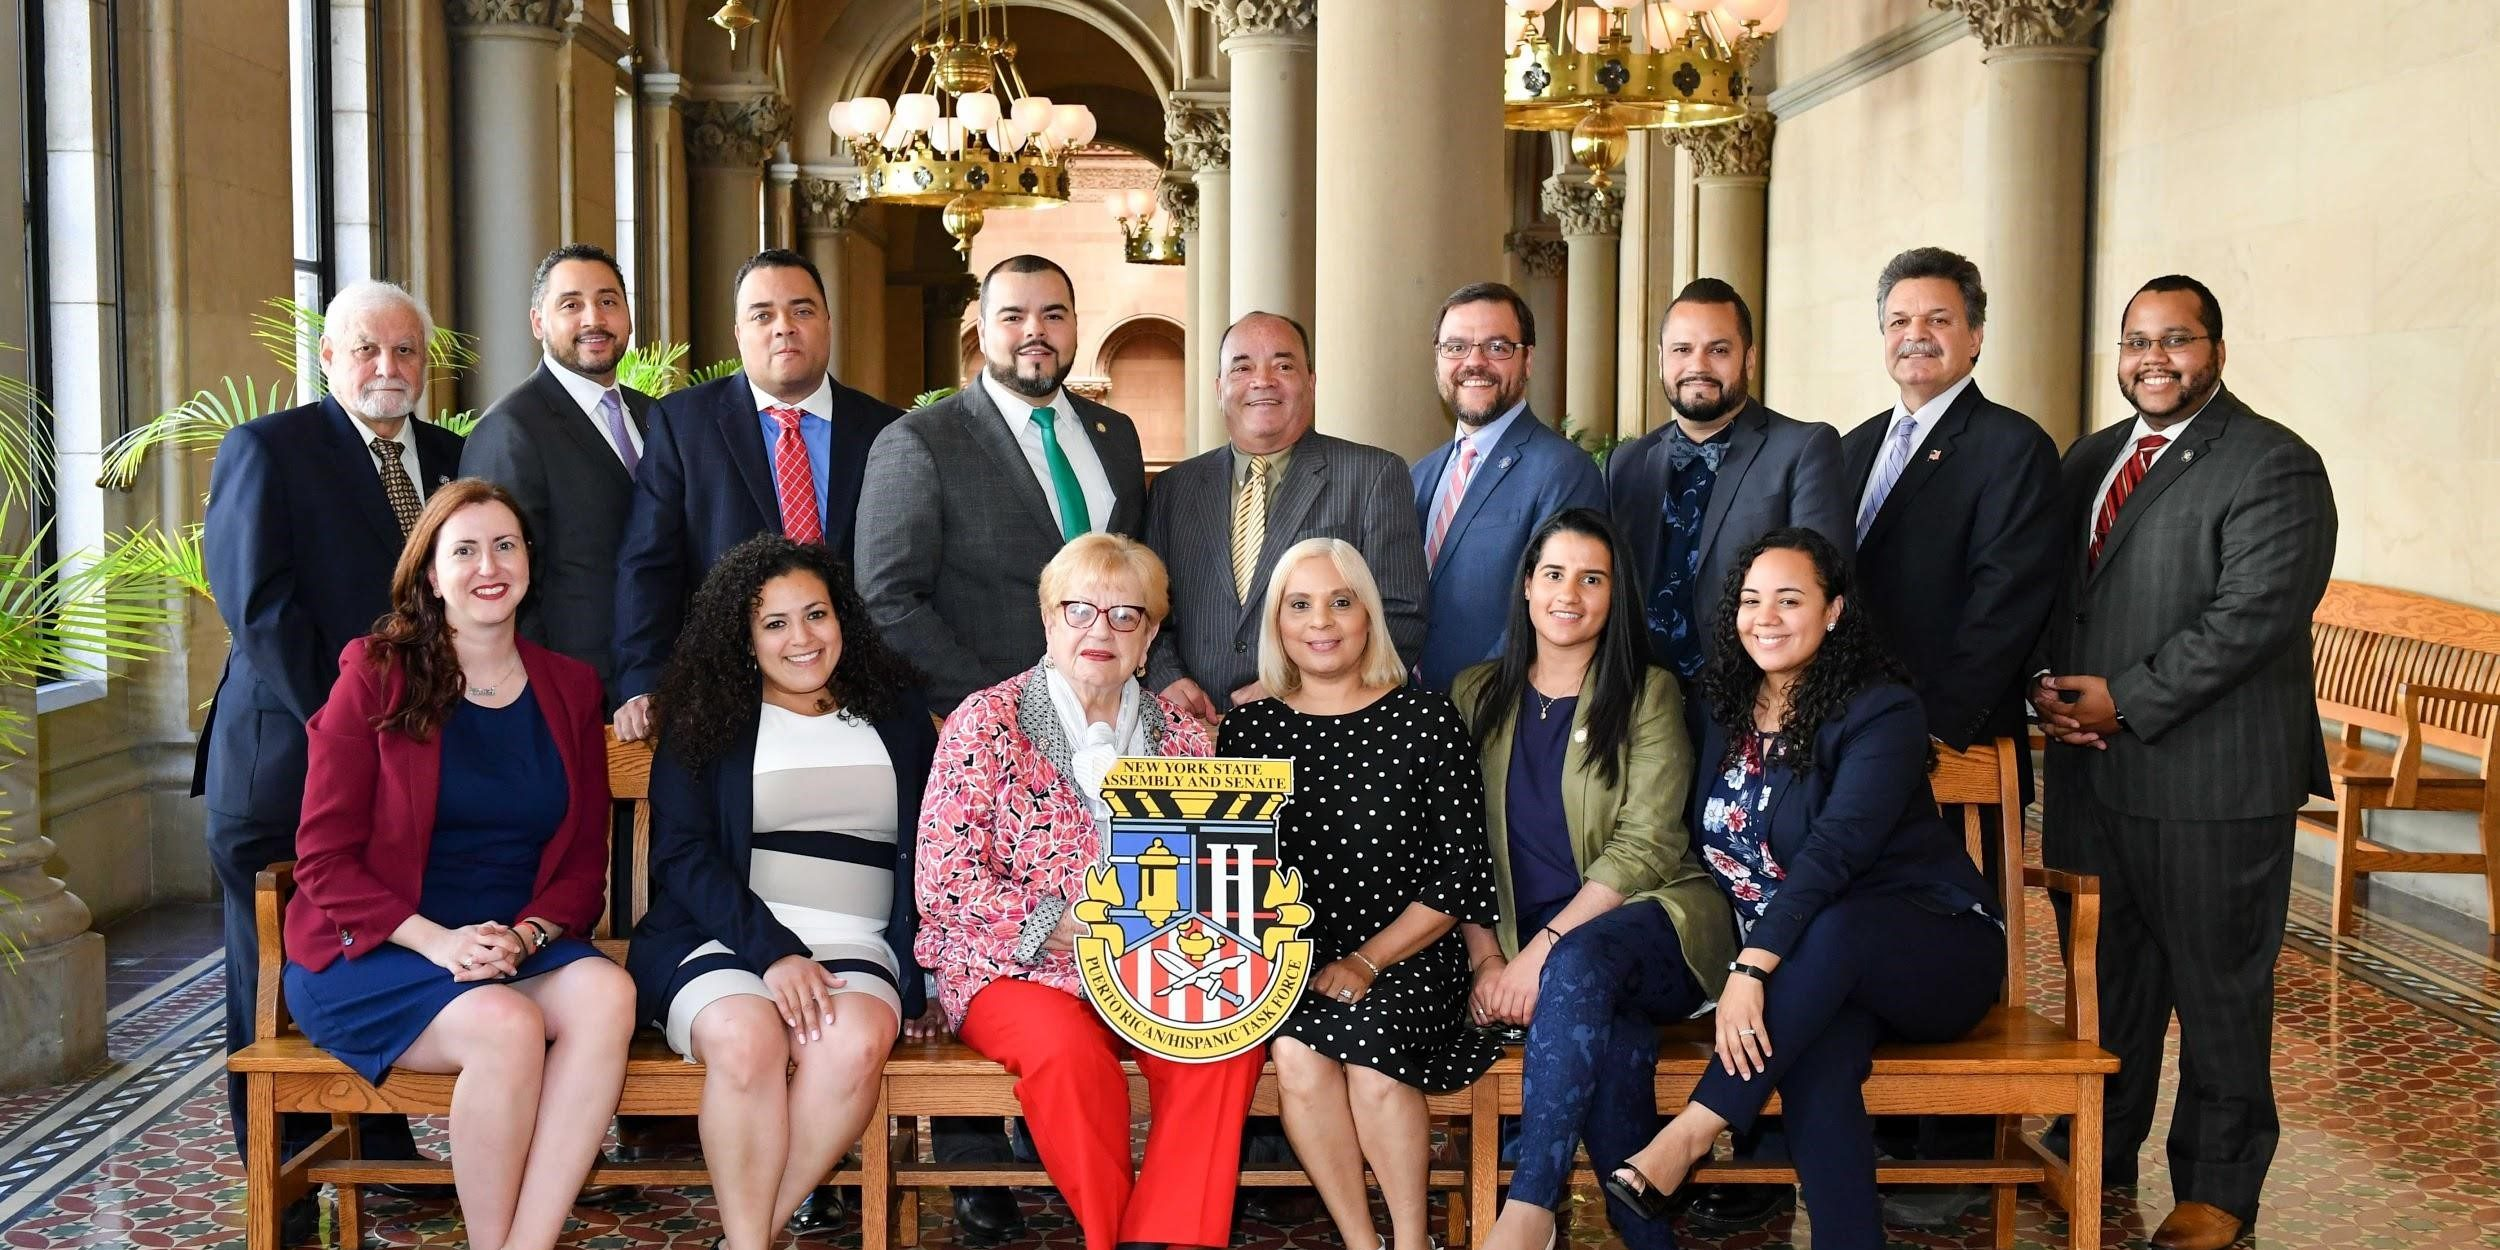 New York State Assembly / Senate Puerto Rican / Hispanic Task Force end of session photo in Senate Gallery. June 19, 2018